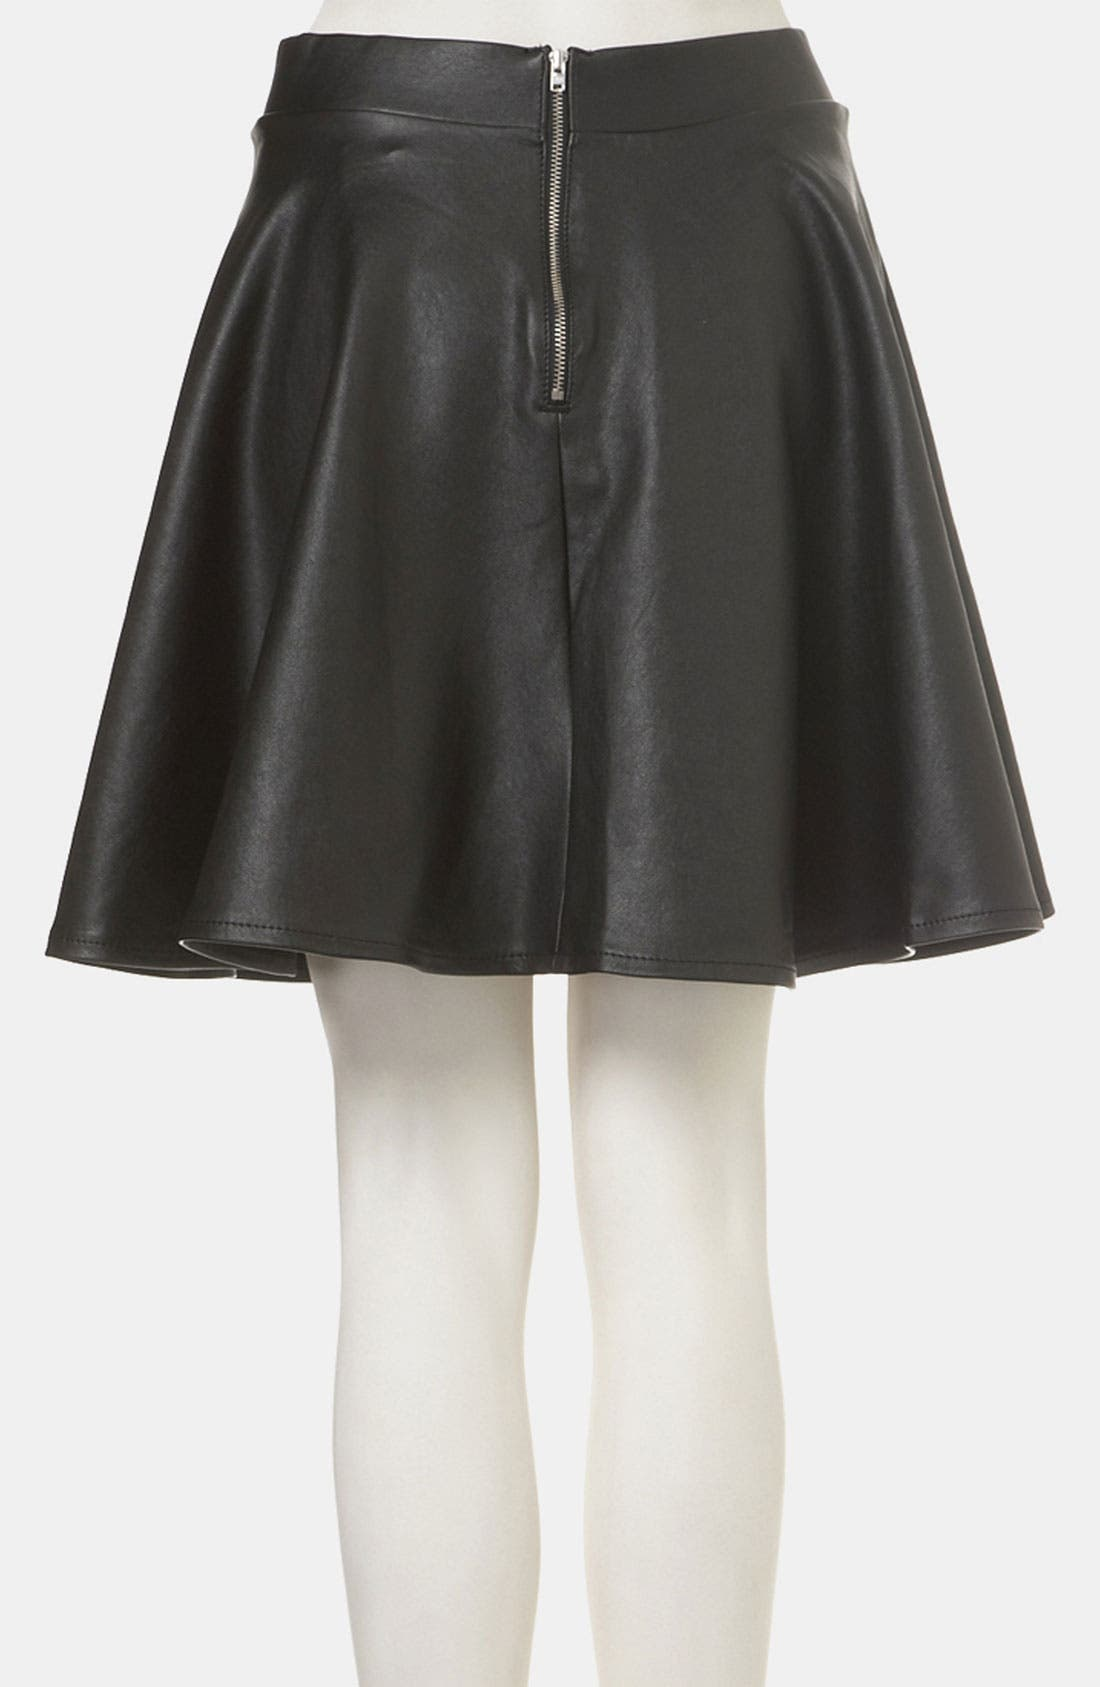 TOPSHOP,                             'Andie' Faux Leather Skater Skirt,                             Alternate thumbnail 3, color,                             001